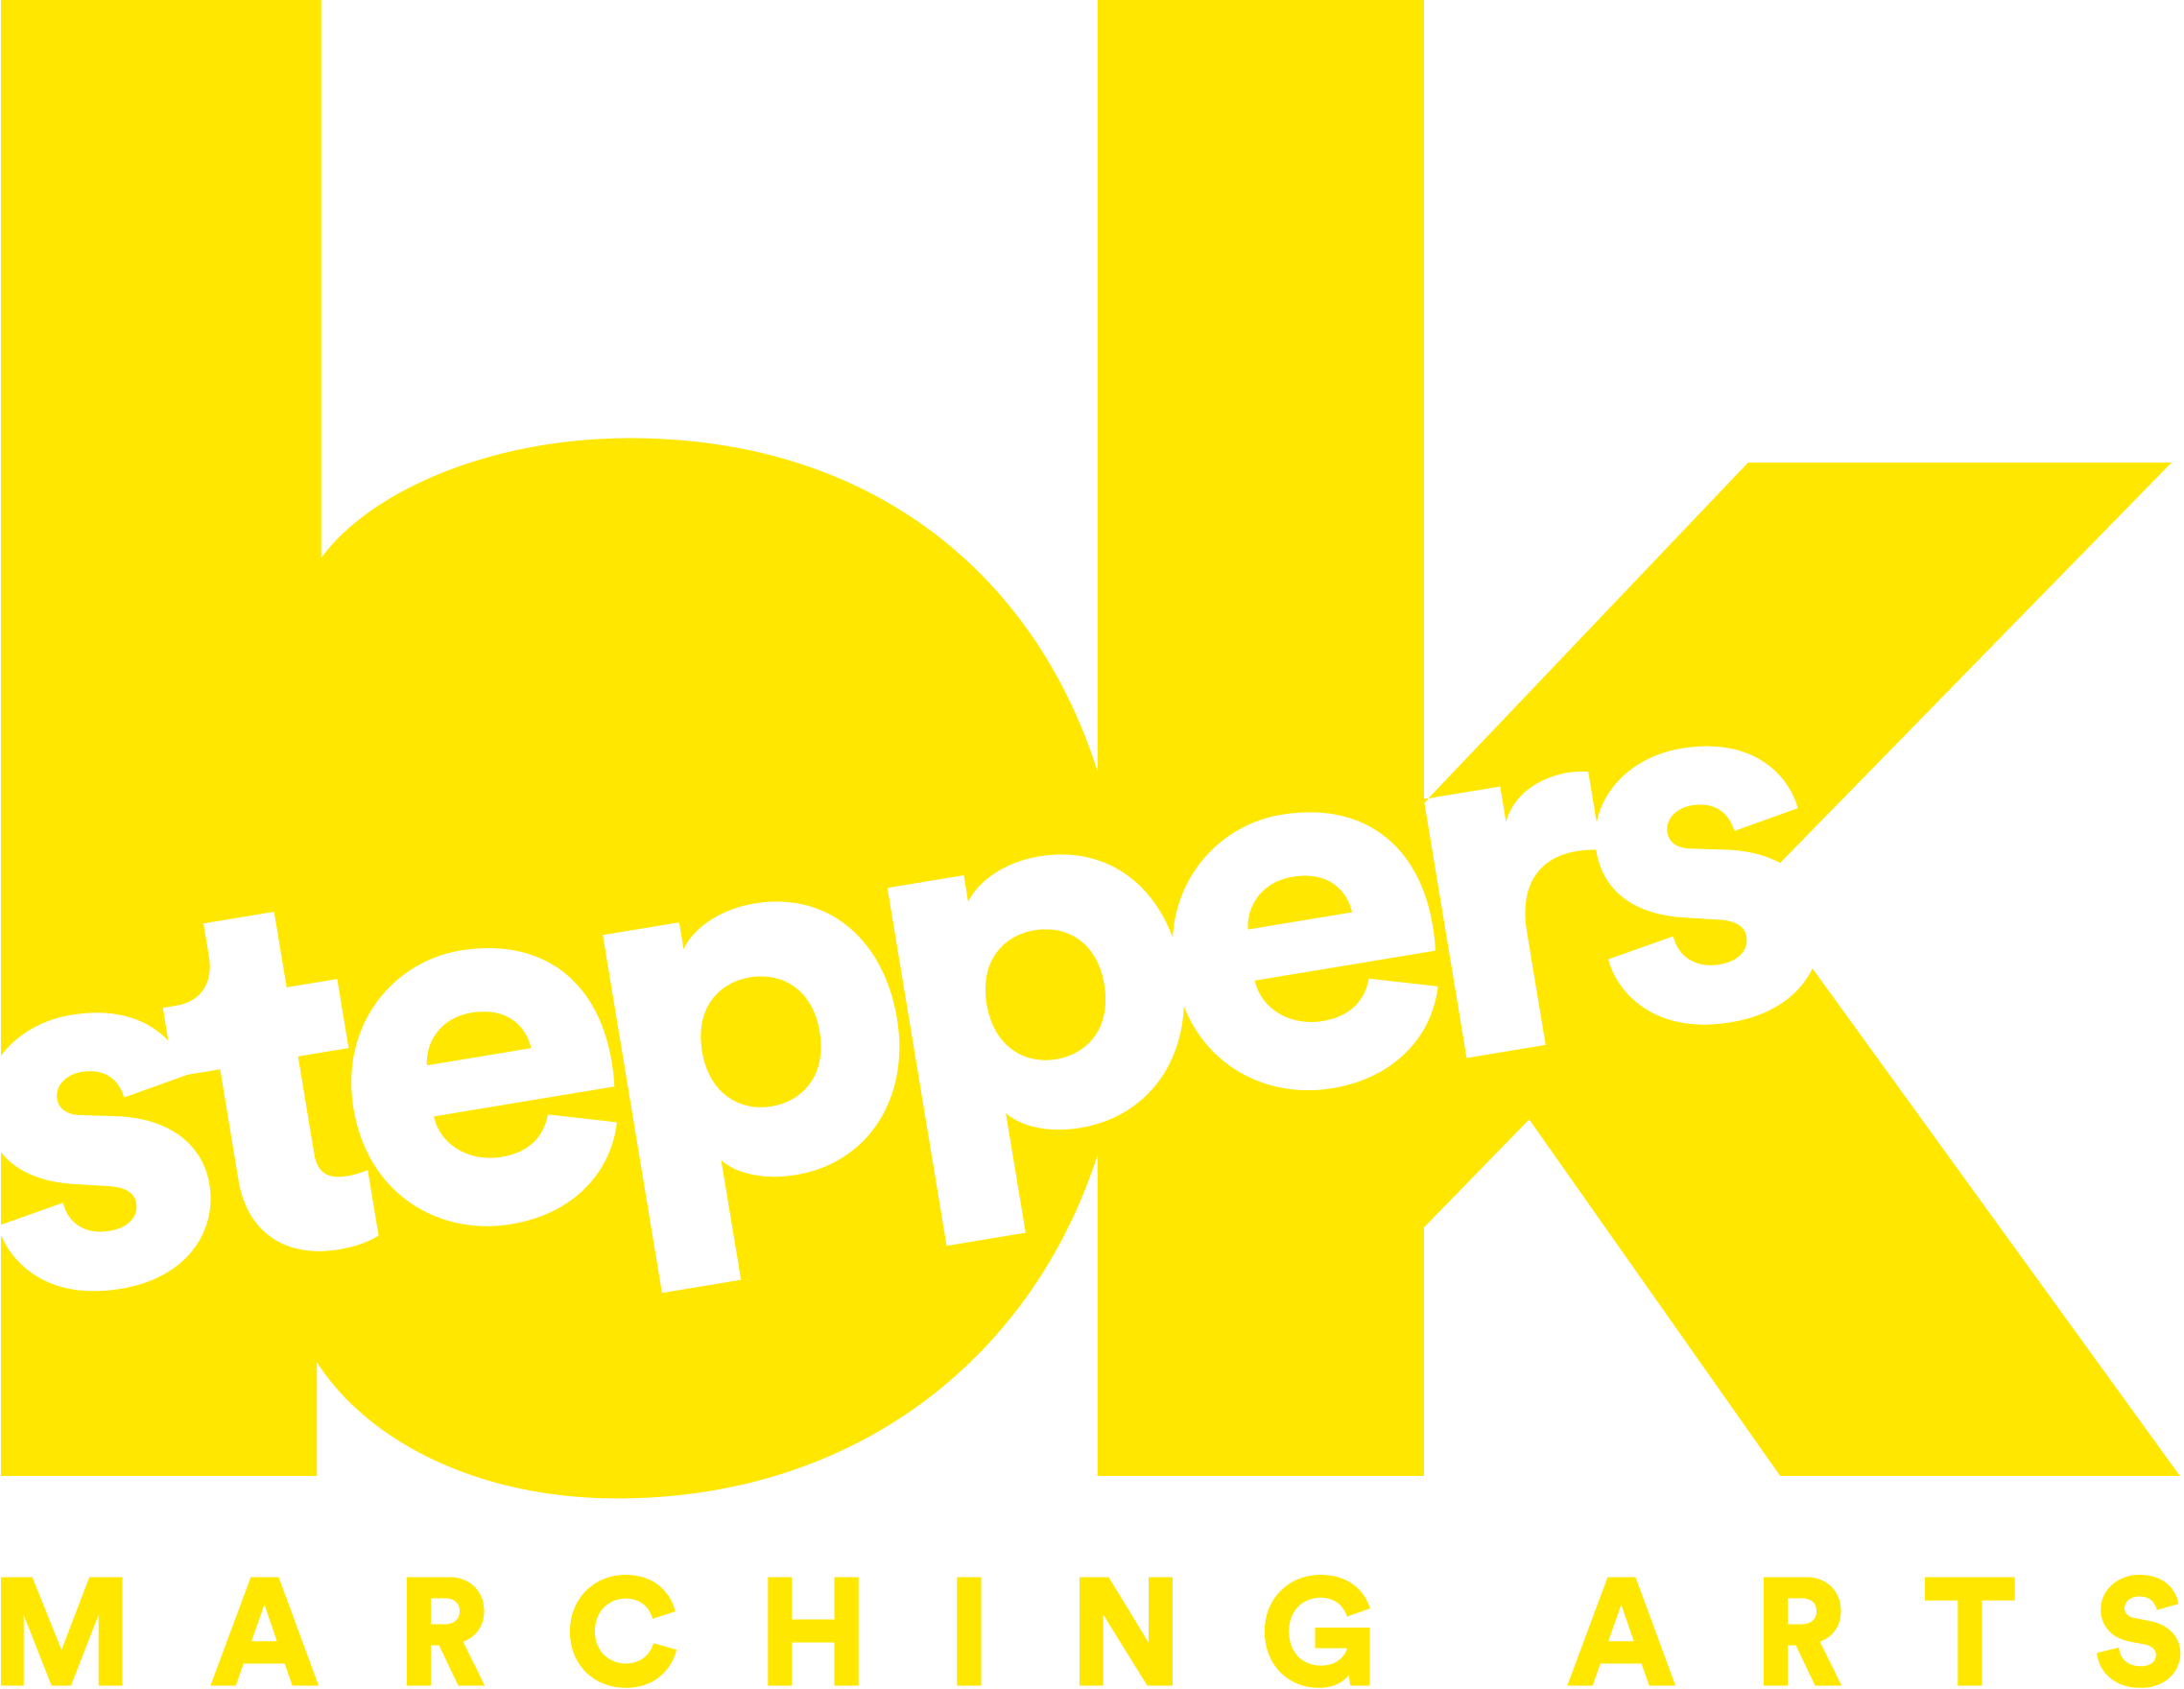 BKSteppers Marching Arts